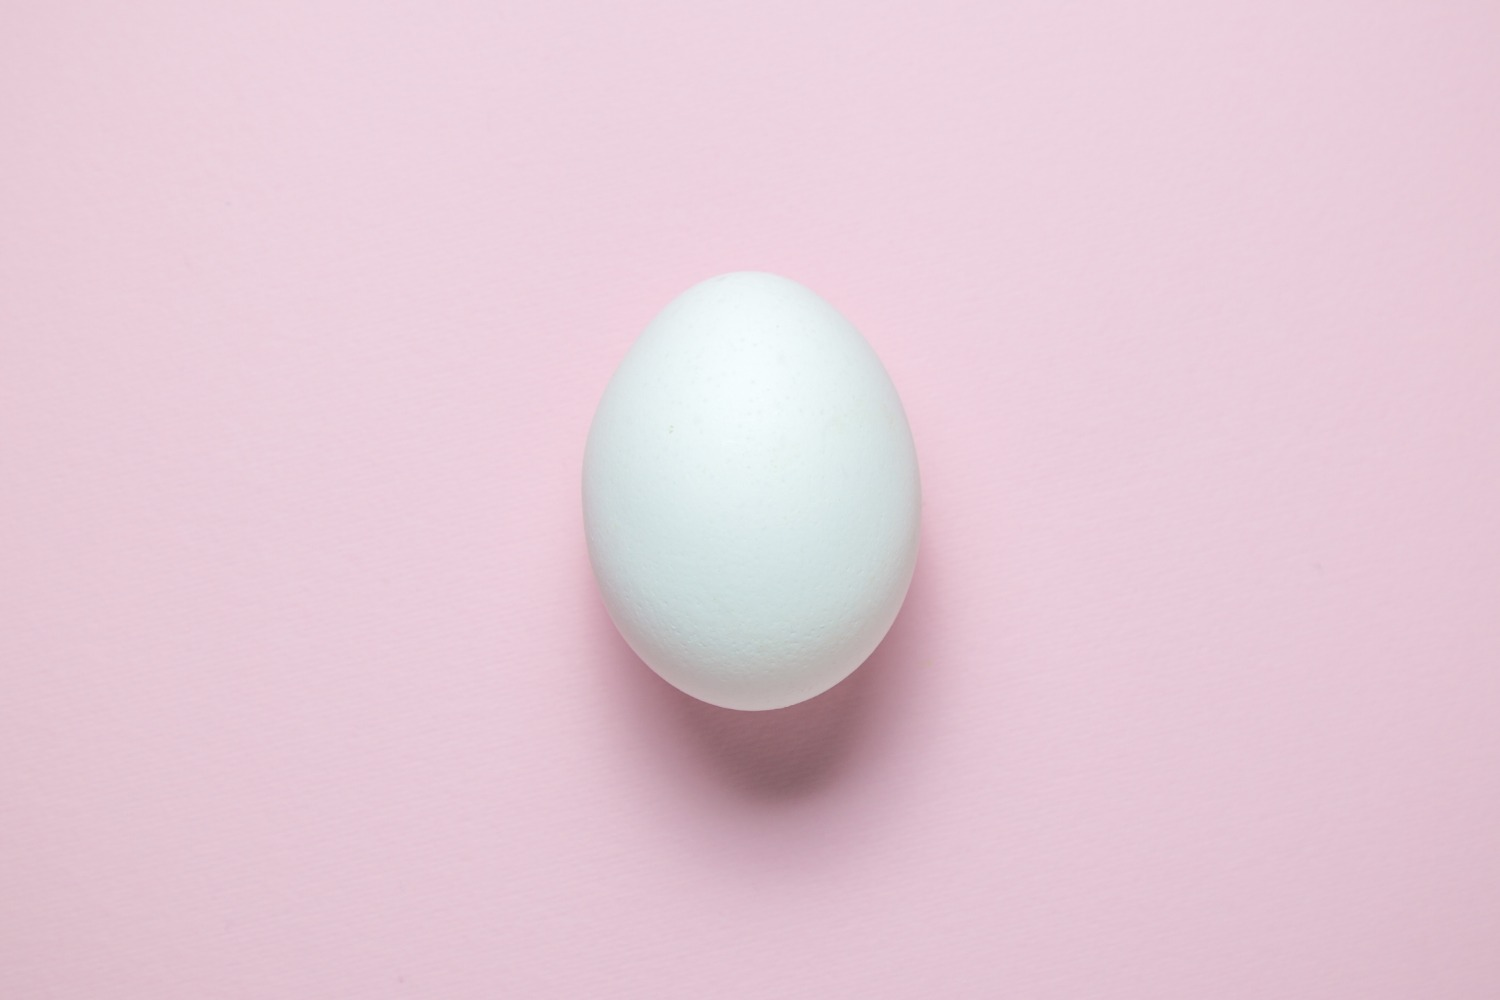 Egg on pink background